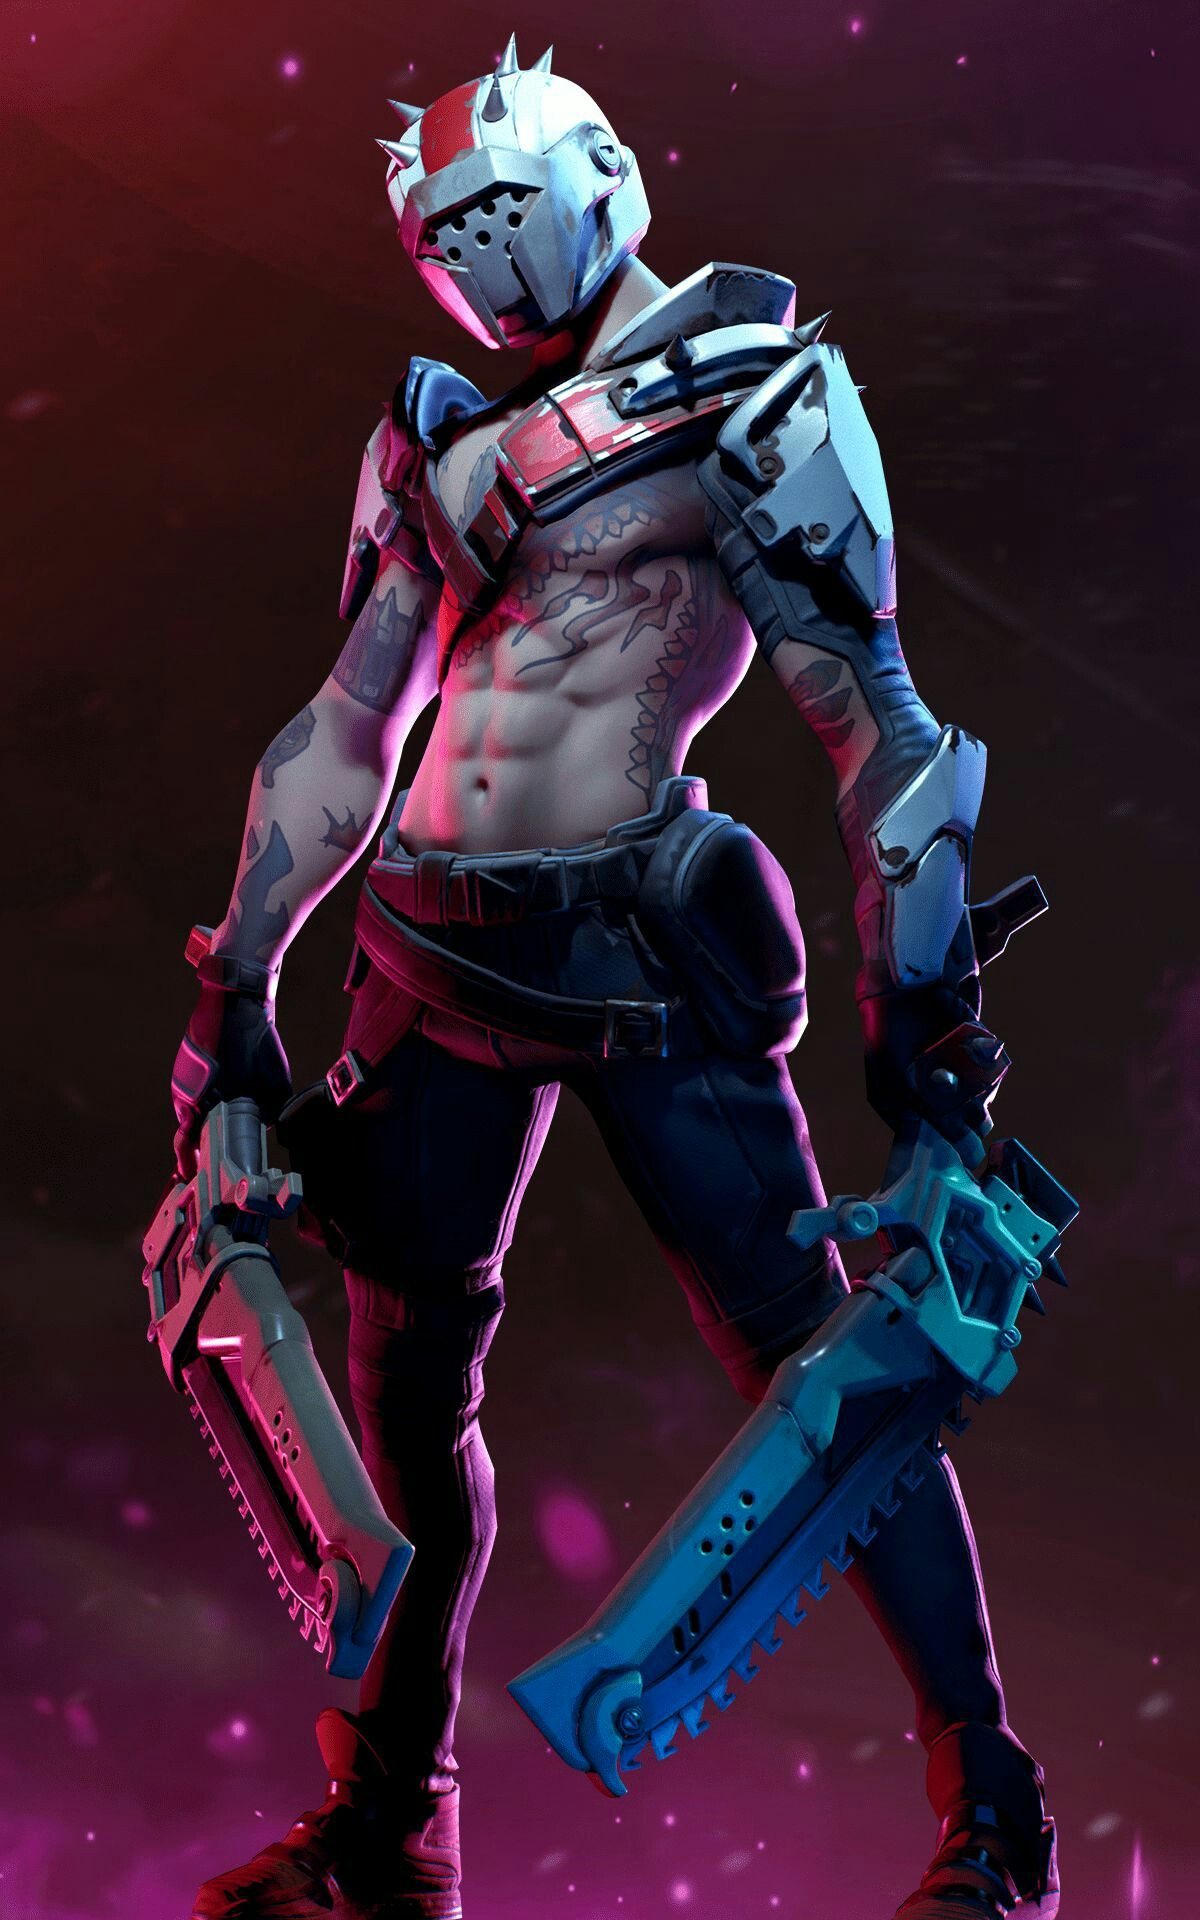 Pin by Mix Gamers on Fortnite Gaming wallpapers